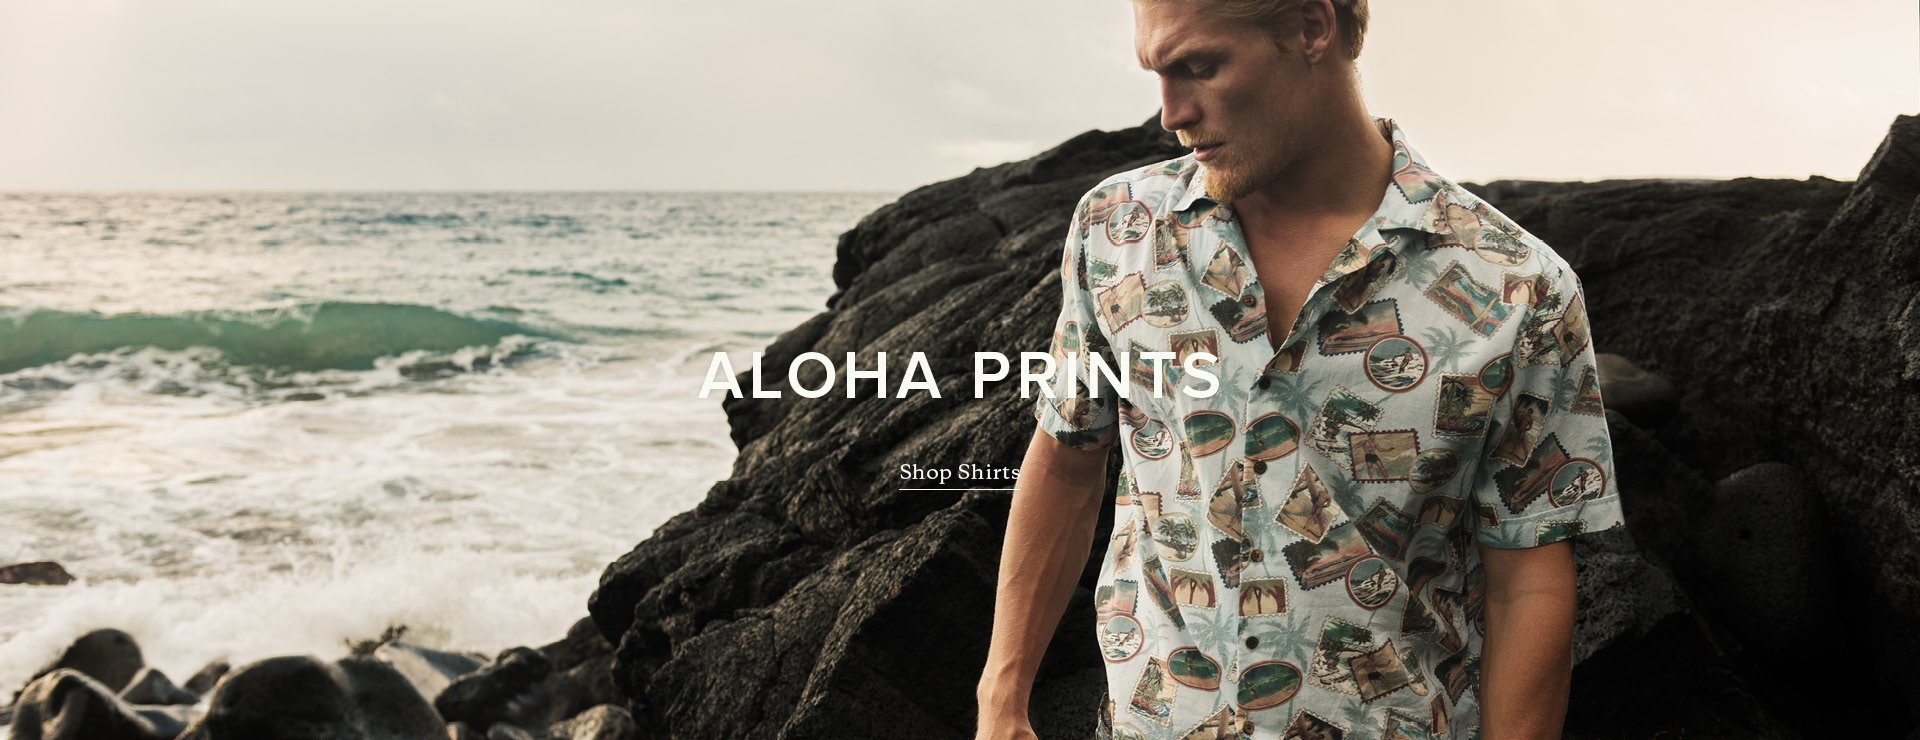 Aloha Prints - Shop Shirts